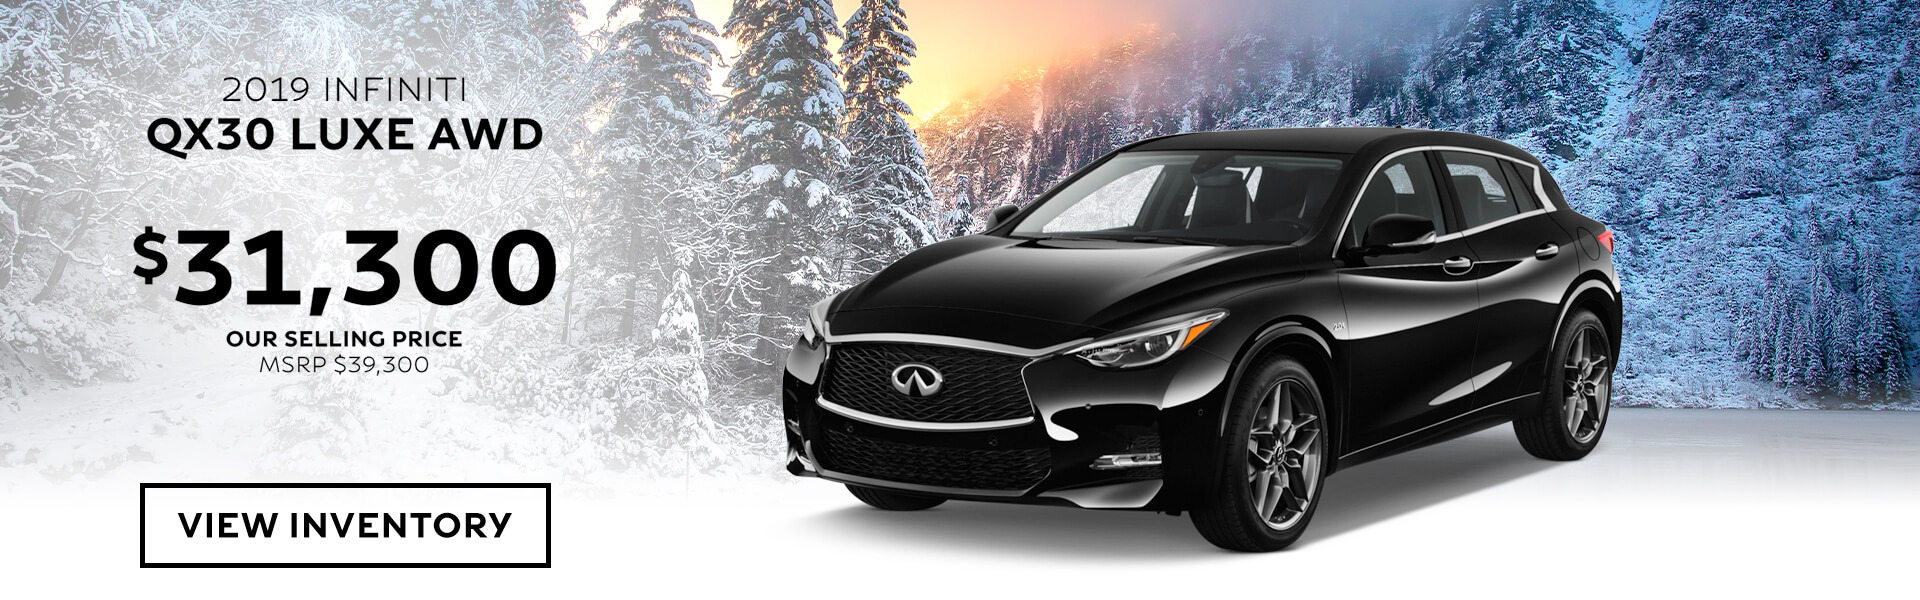 QX30 Purchase offer